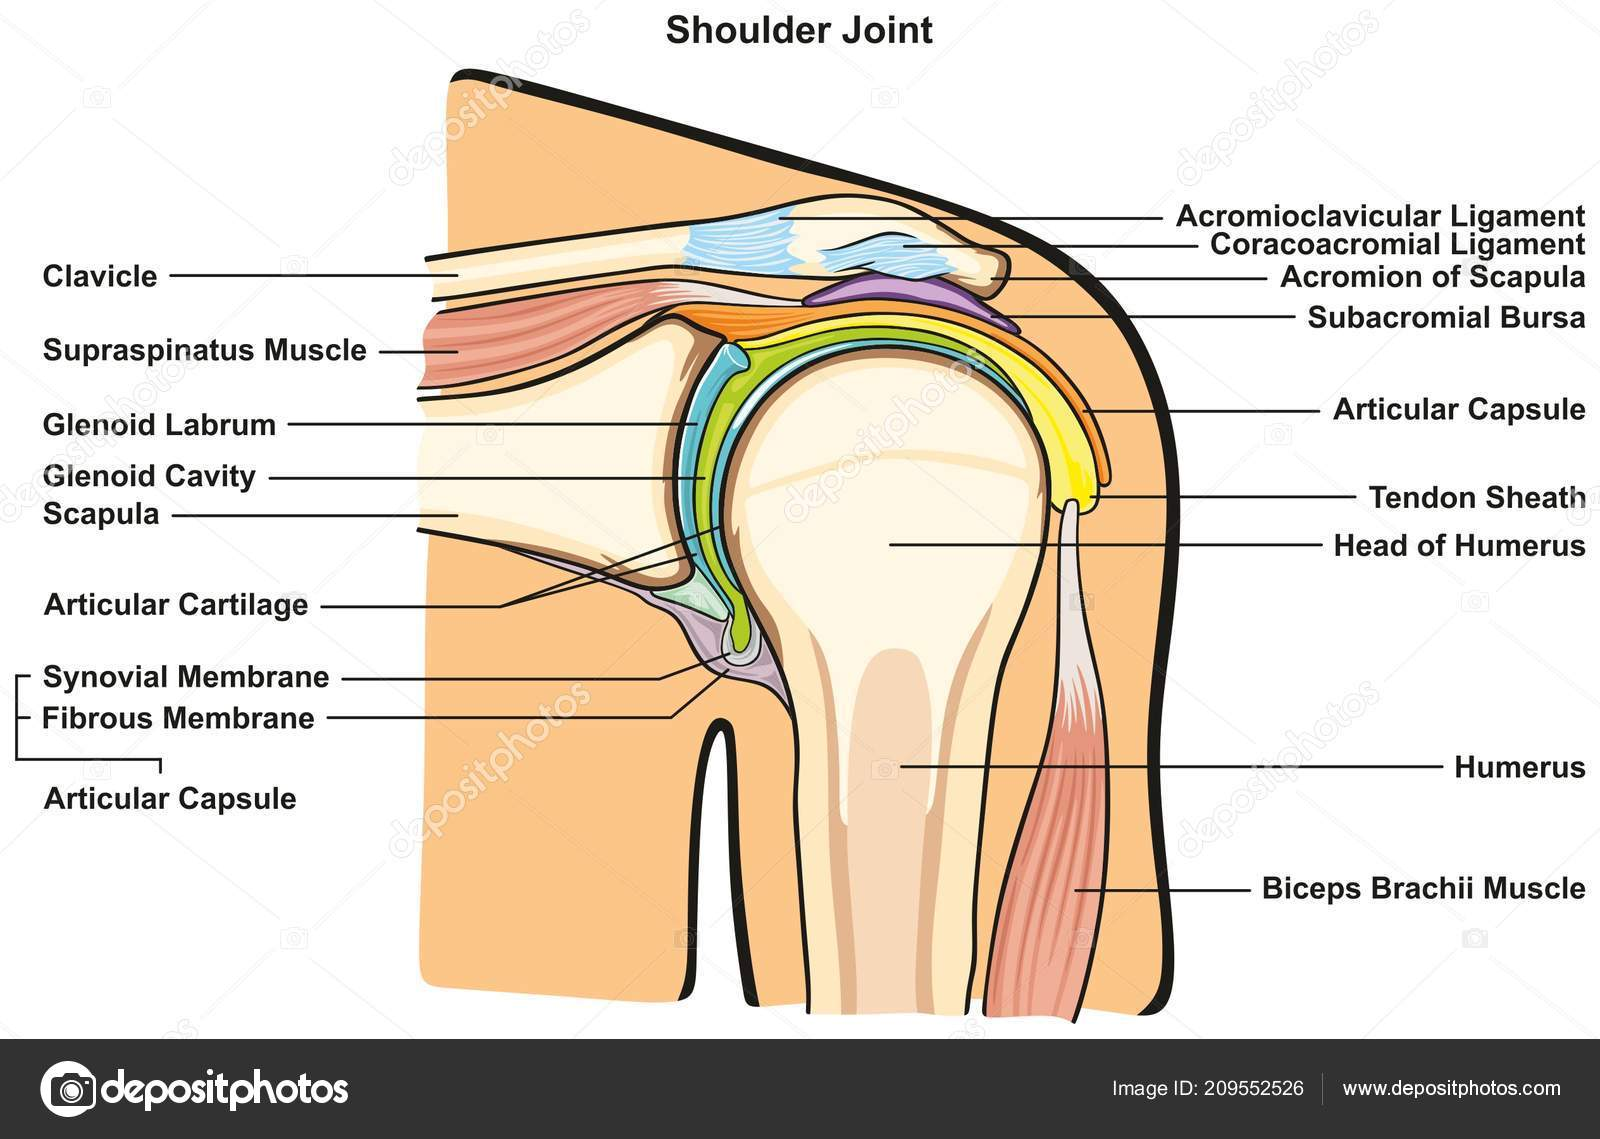 hight resolution of shoulder joint of human body anatomy infographic diagram with all parts including bones ligaments muscles bursa cavity capsule cartilage membrane for